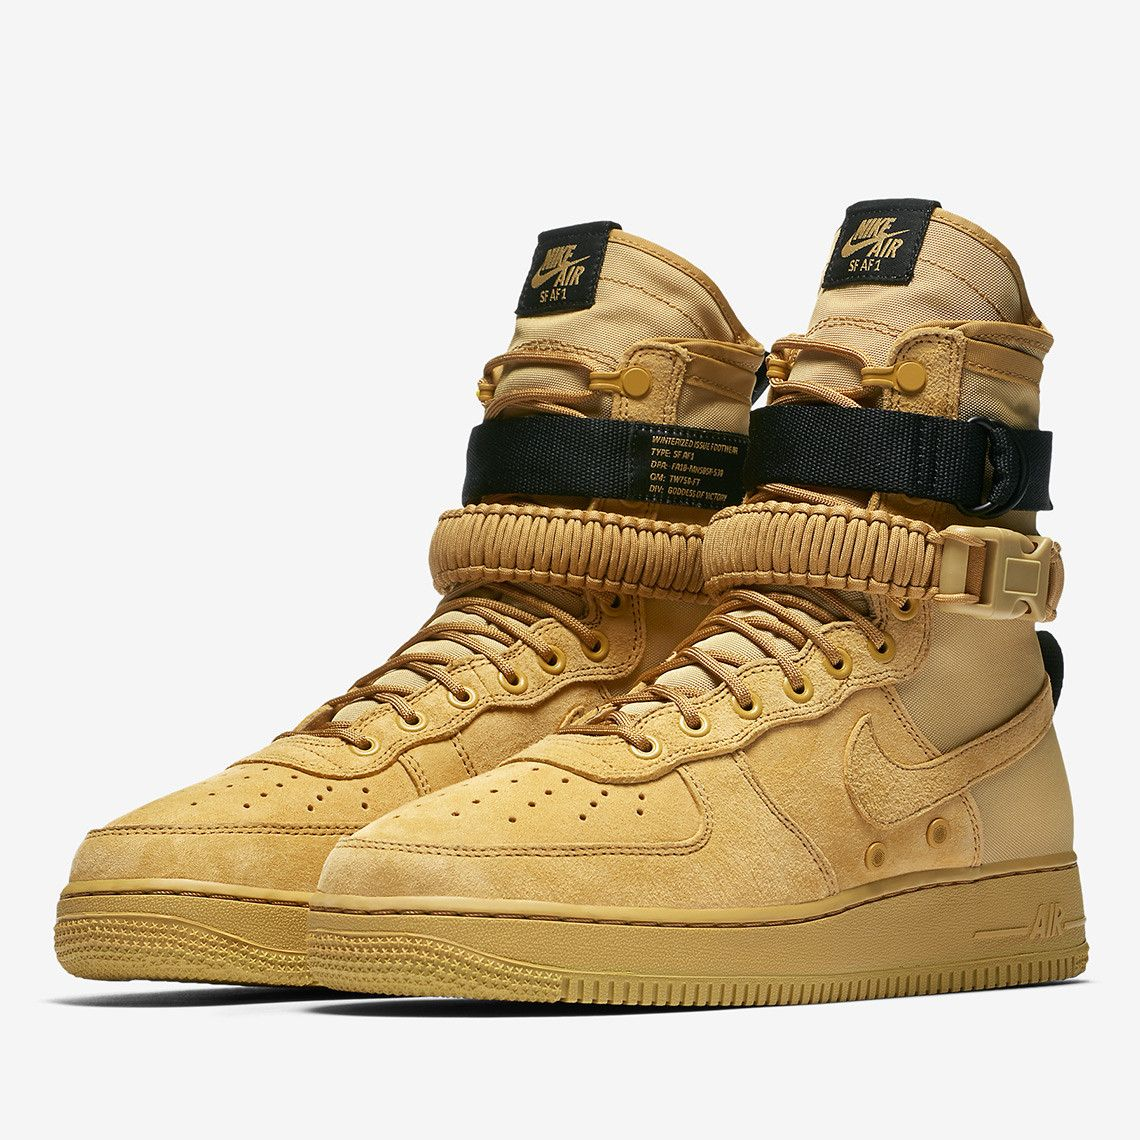 The Nike SF AF1 Returns This Fall In Wheat Colorway | Nike